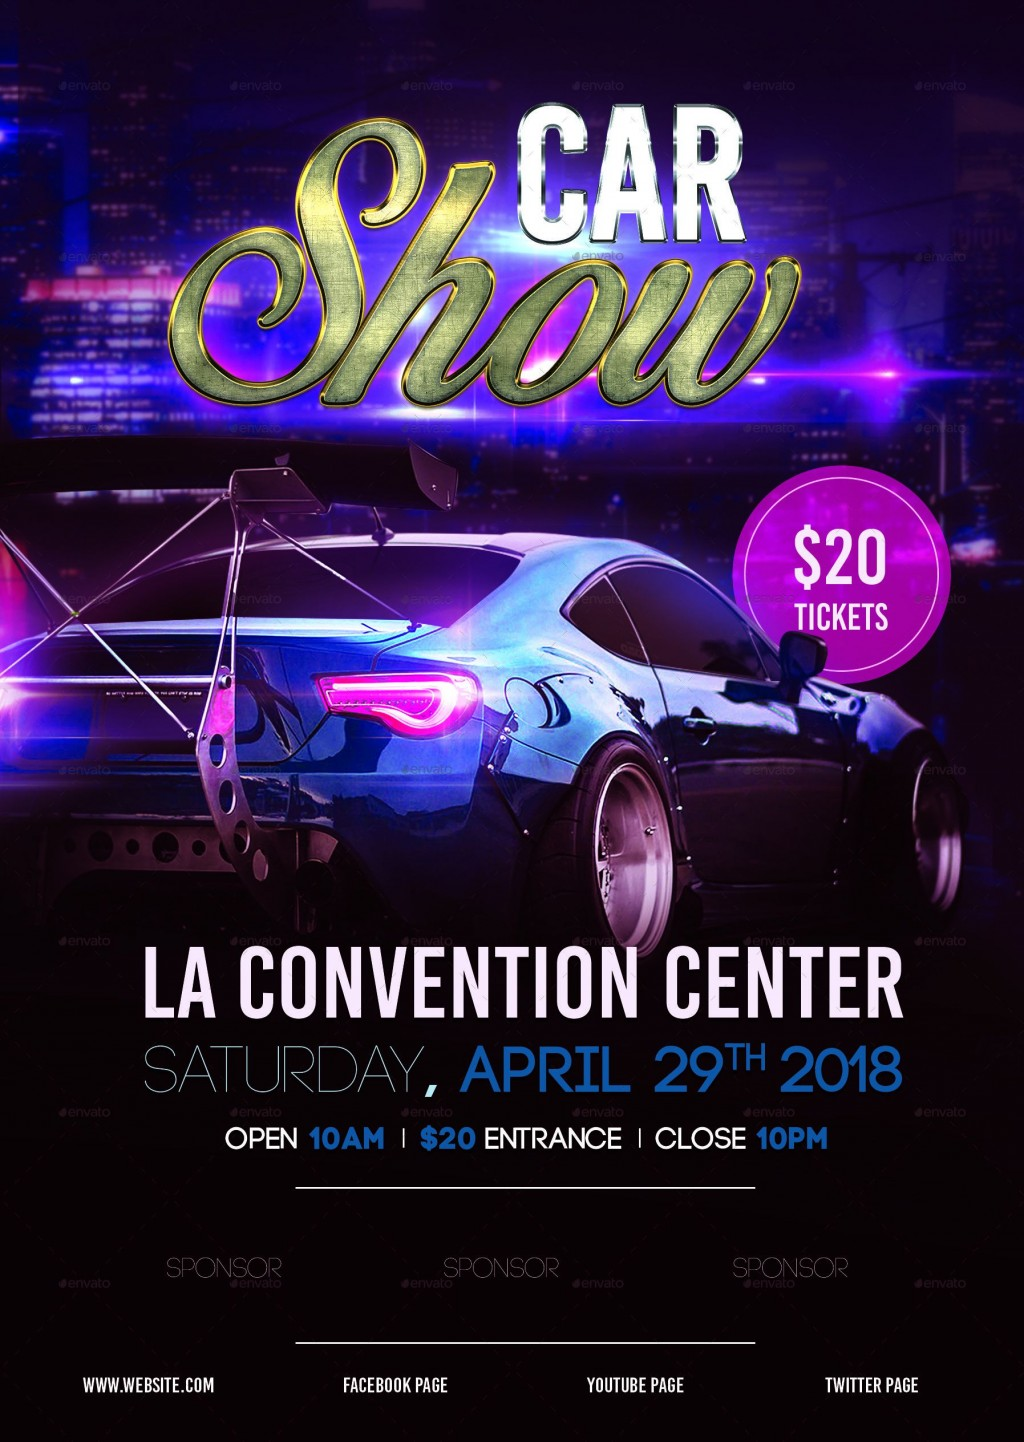 008 Outstanding Free Car Show Flyer Template High Resolution  Psd And BikeLarge